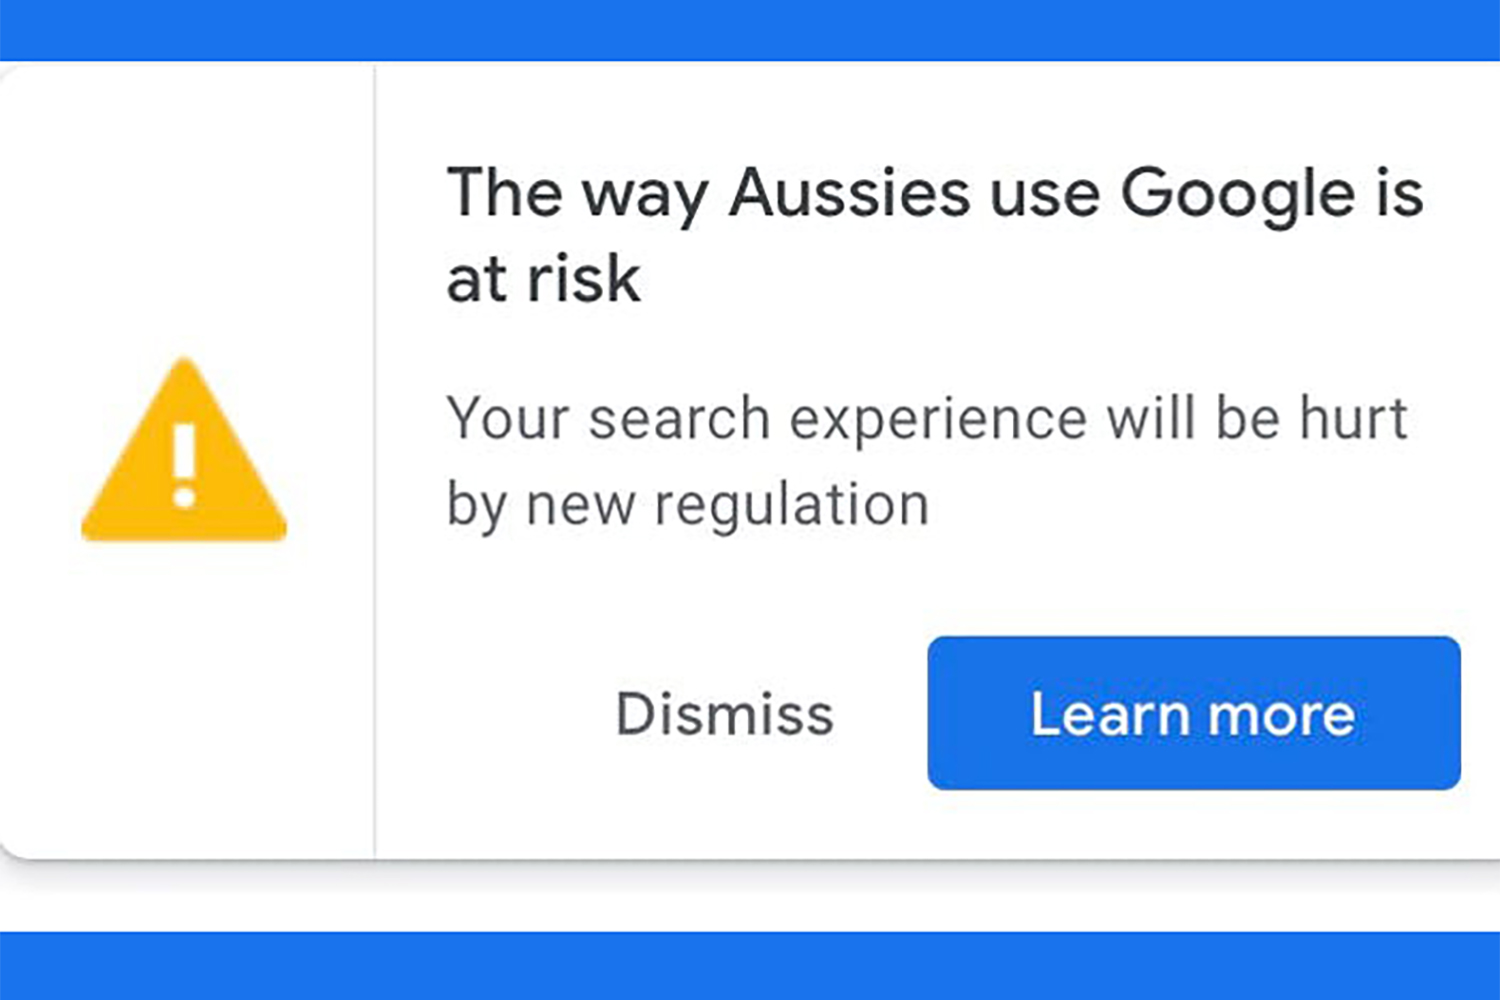 Google has been warning Aussies that its services will soon get worse